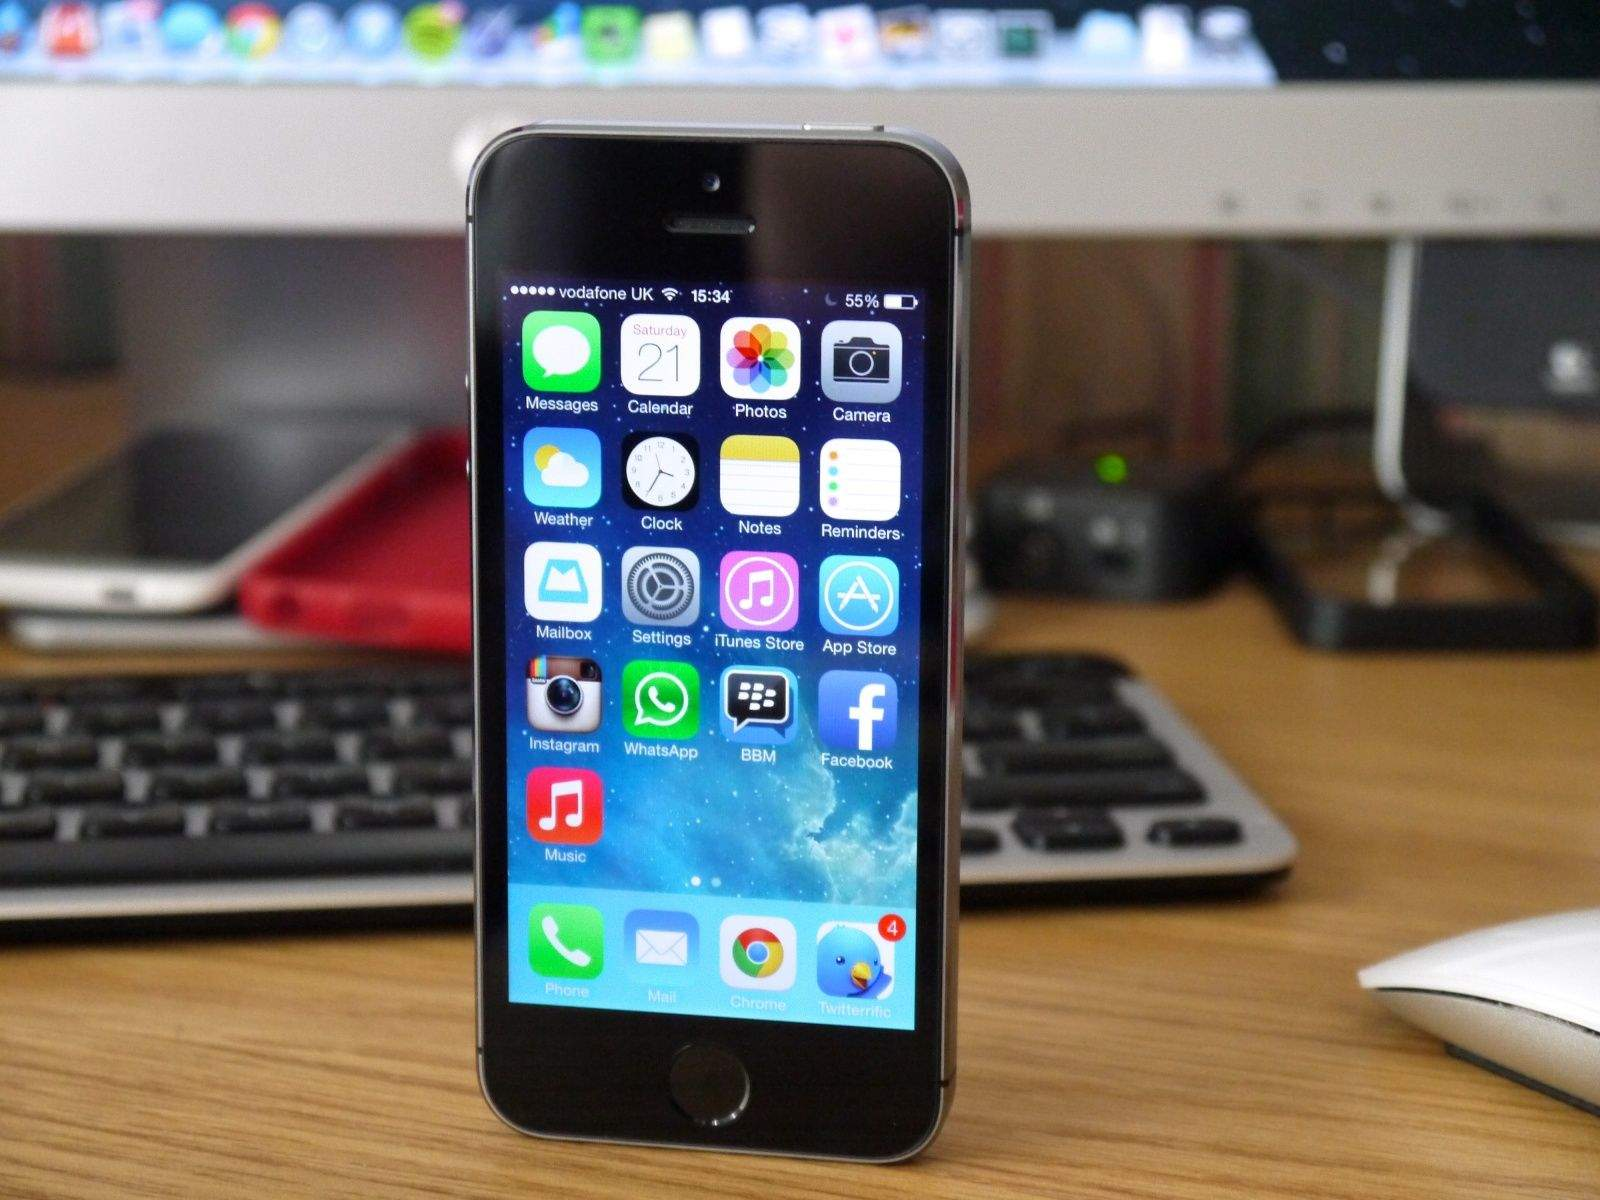 iphone 5c virgin mobile iphone 5s the closest any smartphone comes to being 14711